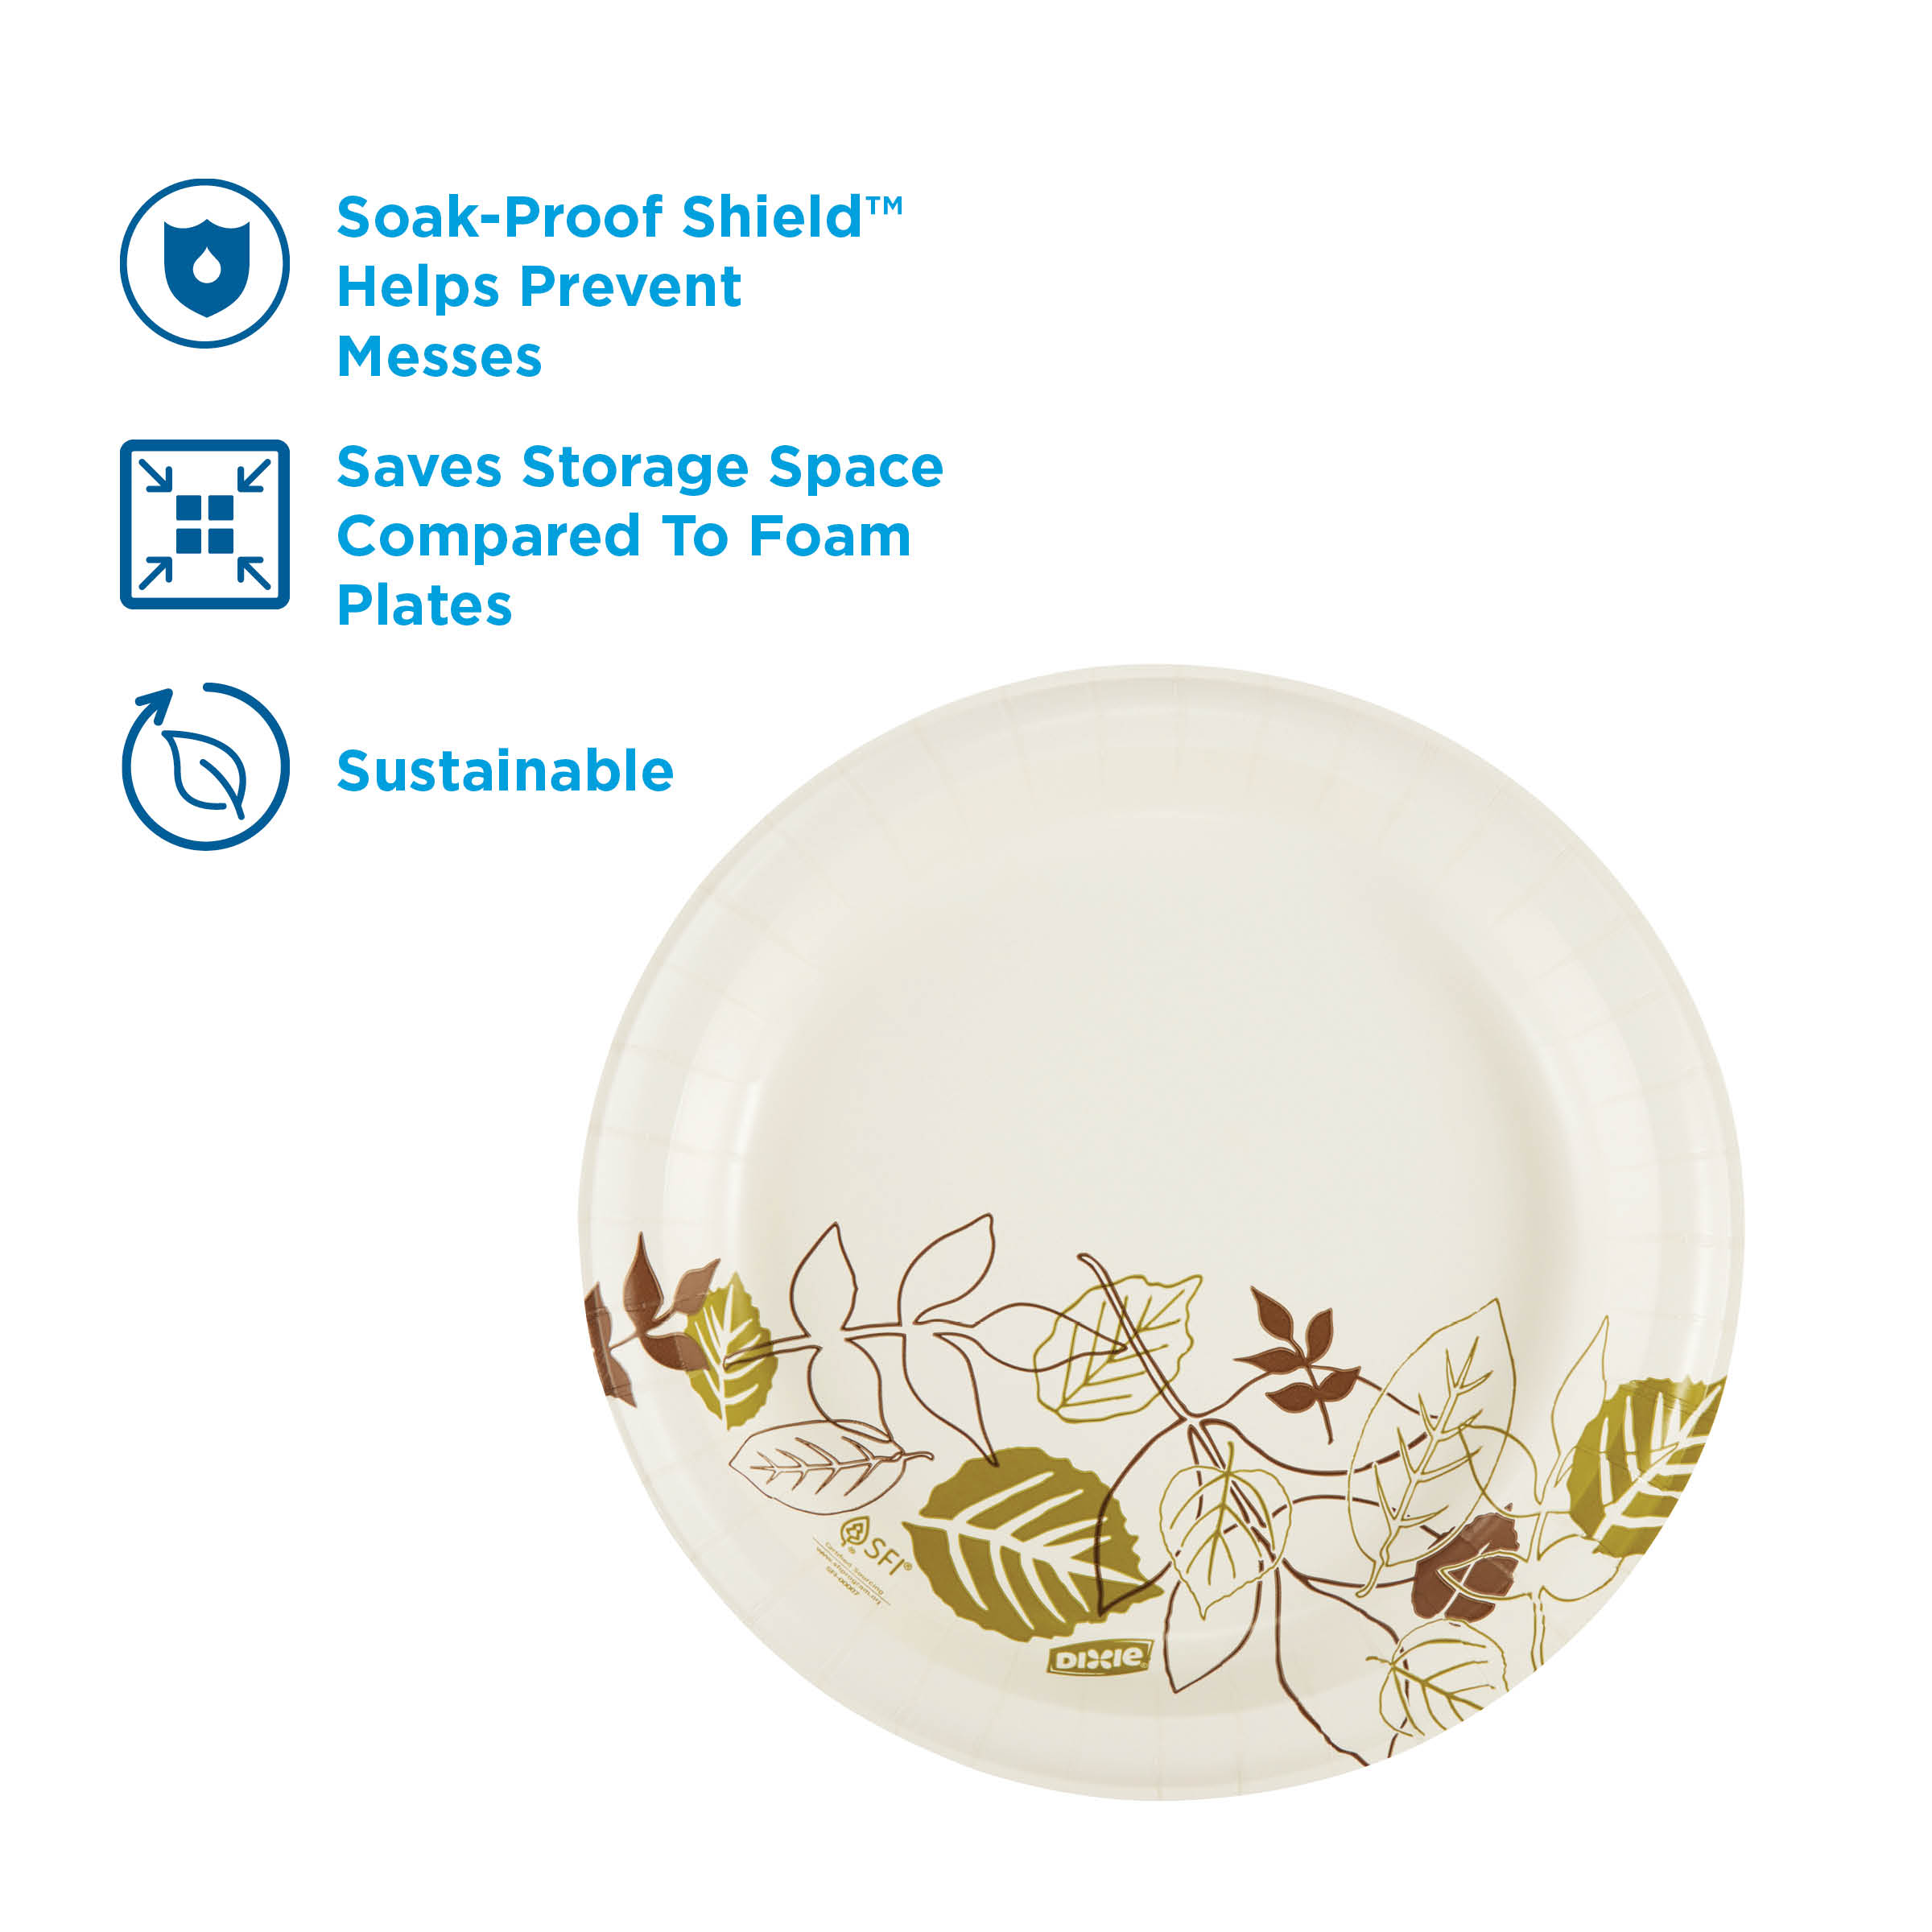 Pathways 500 Count Georgia-Pacific - 2 Pack Dixie Ultra 10Heavy-Weight Paper Plates by GP PRO SXP10PATH 125 Plates Per Pack, 4 Packs Per Case